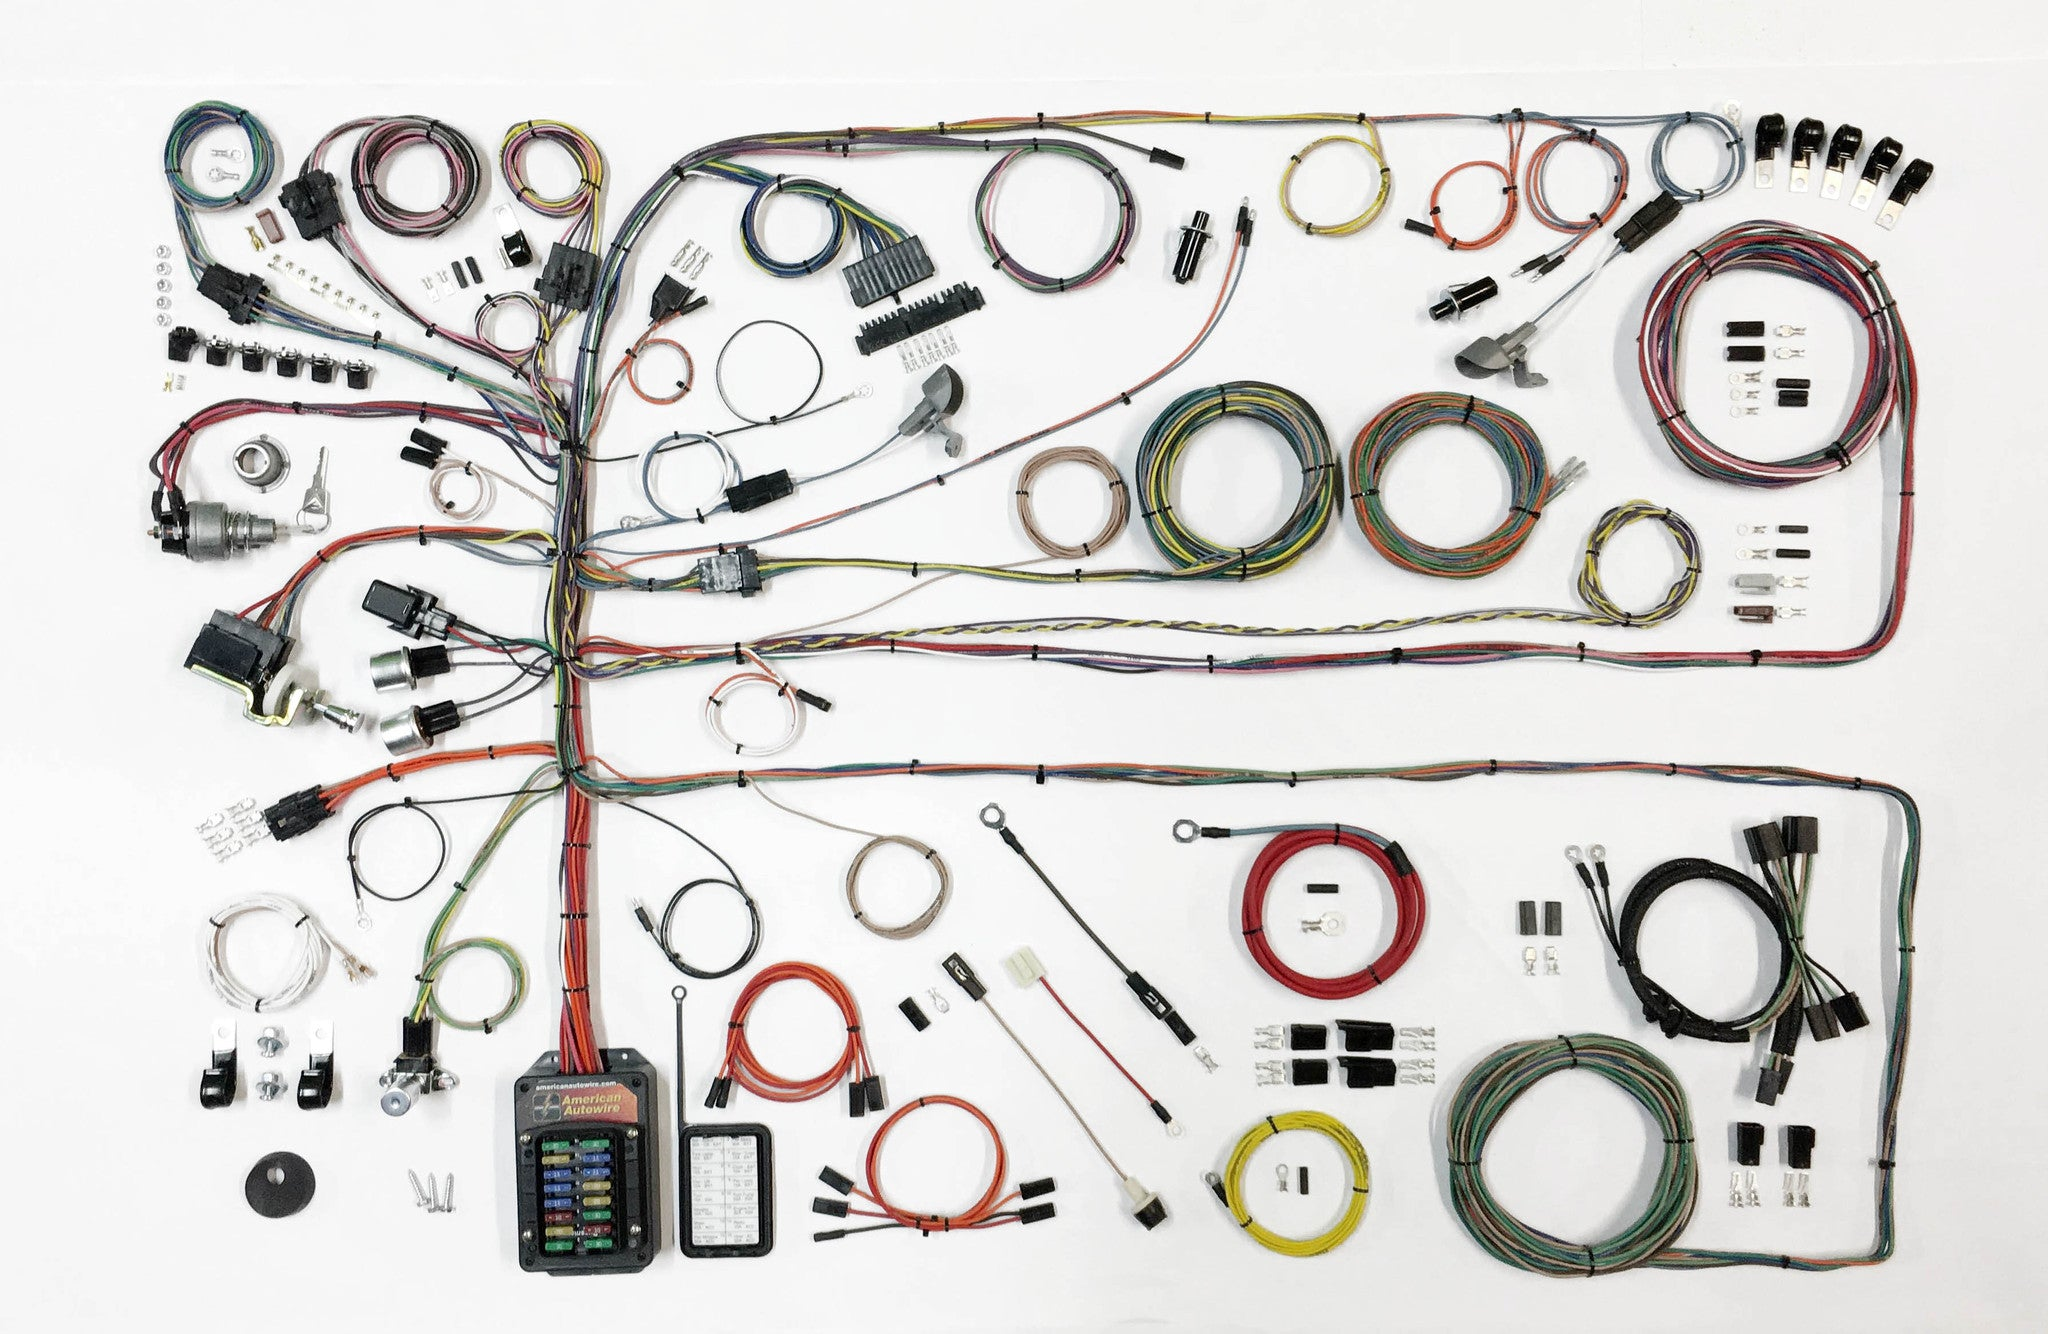 1957 Ford Wiring Harness Detailed Schematics Diagram Cigarette Lighter Circuit For The 1960 Chevrolet Passenger Car Truck Bronco Hut Ignition Coil